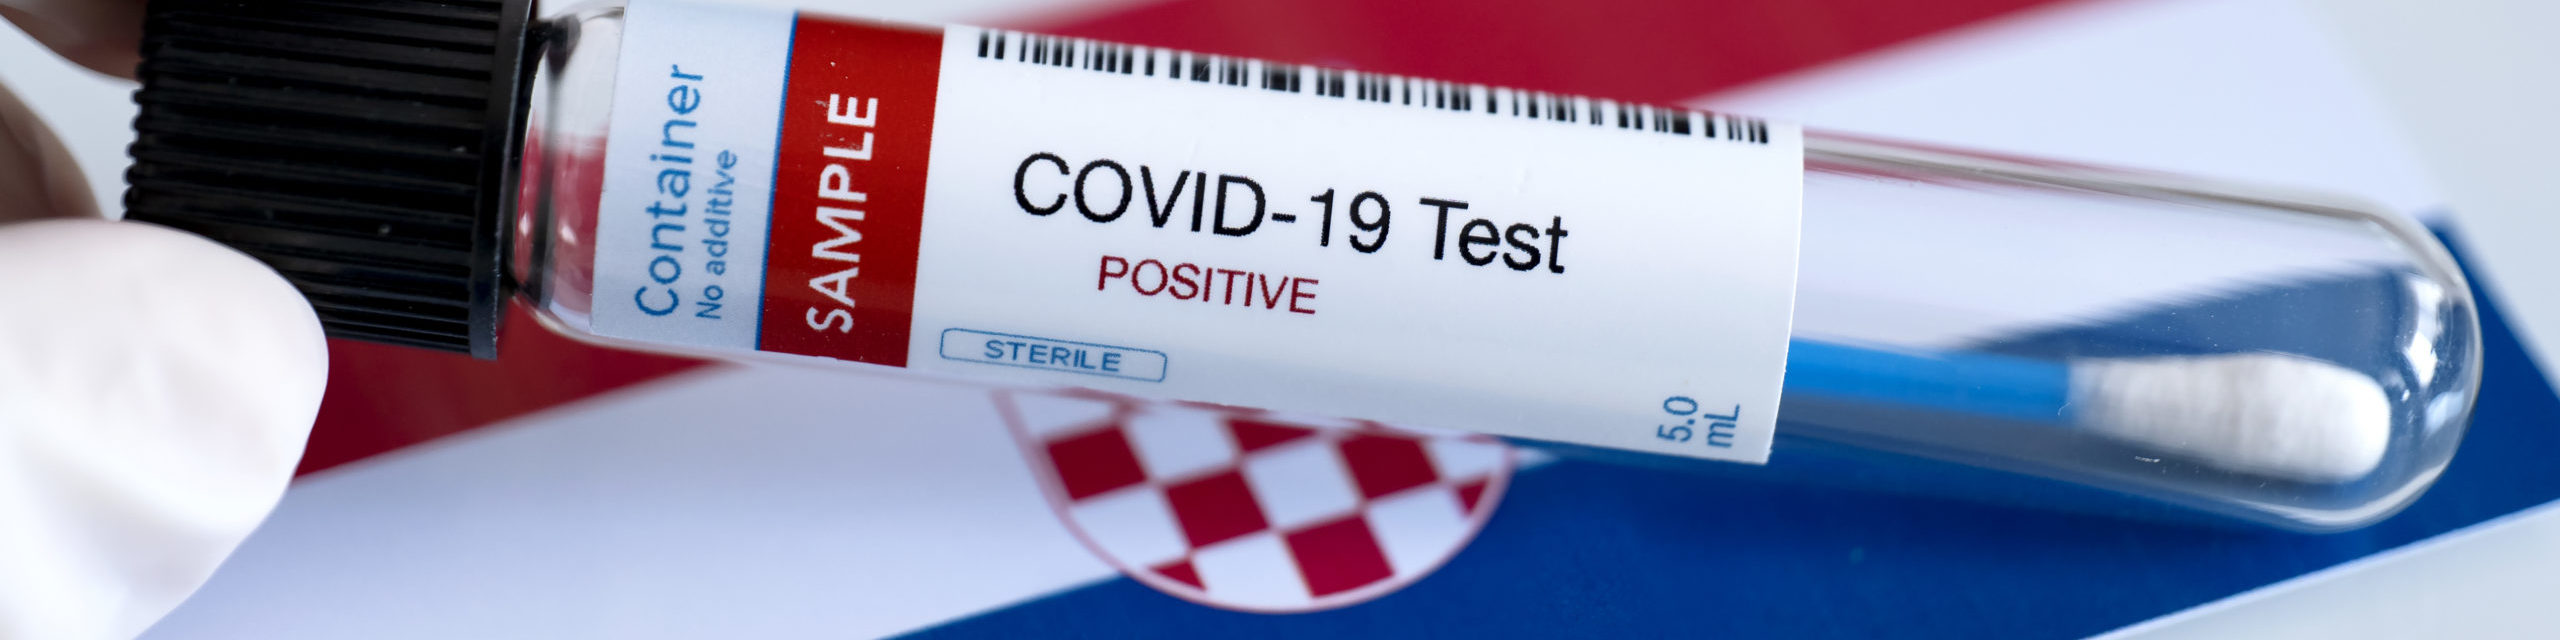 Testing for presence of coronavirus in Croatia. Tube containing a swab sample that has tested positive for COVID-19. Croatian flag in the background.